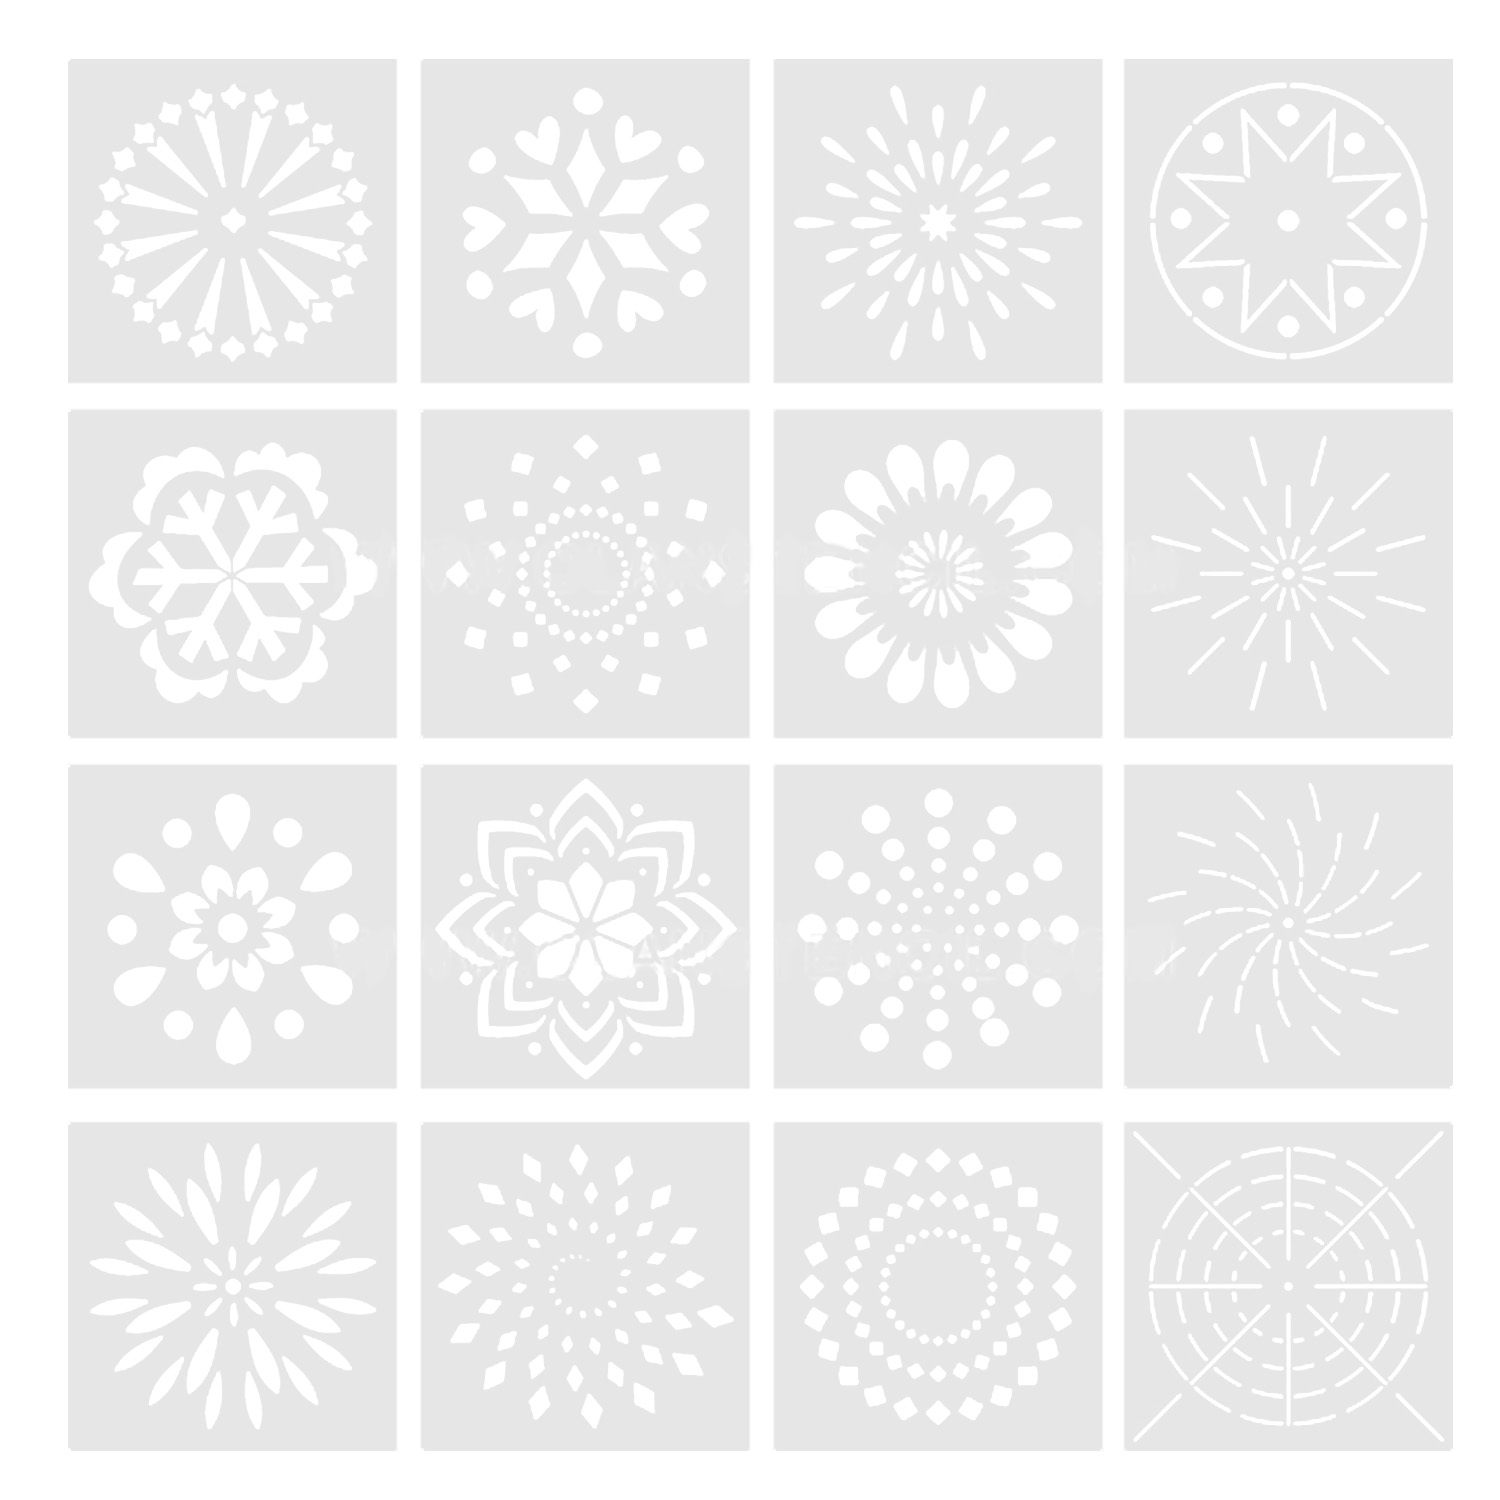 16pcs Reusable Mandala Painting Dotting Tools Tiles Templates Stencil Set For DIY Painting Drawing Drafting Art Craft Projects